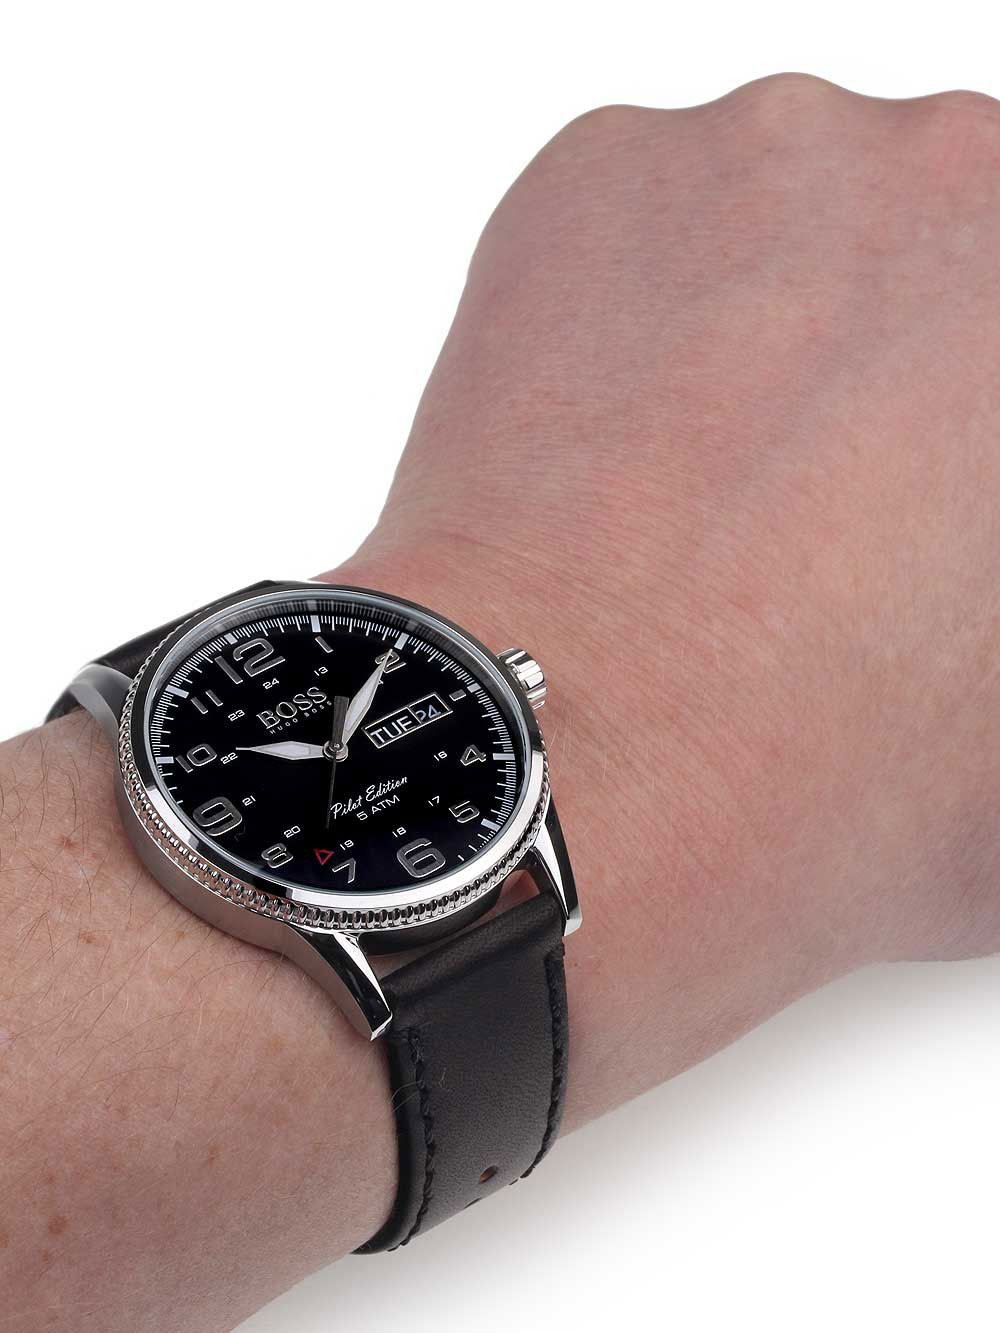 Hugo boss watch with stainless steel and black leather strap 1513330 for Black leather strap